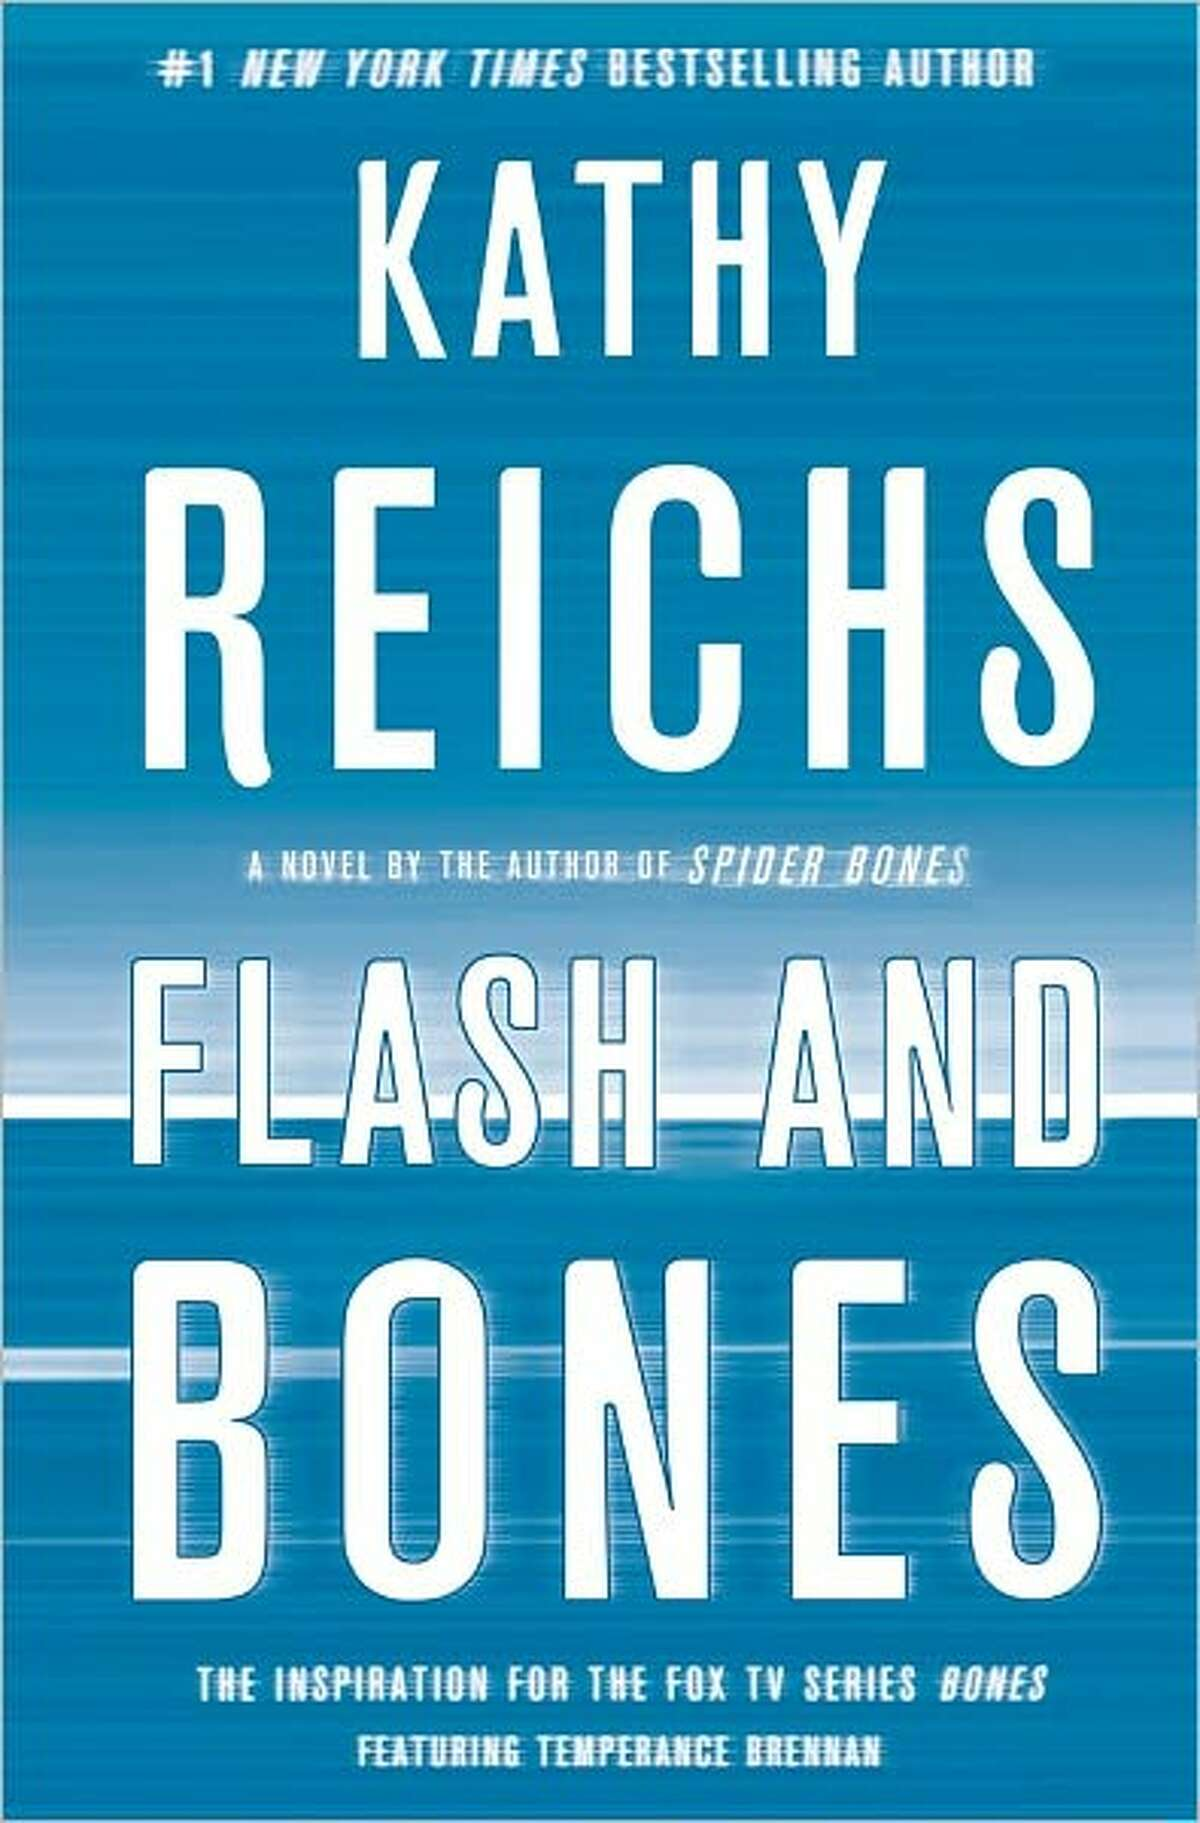 Cover image for Flash and Bones, by Kathy Reichs.